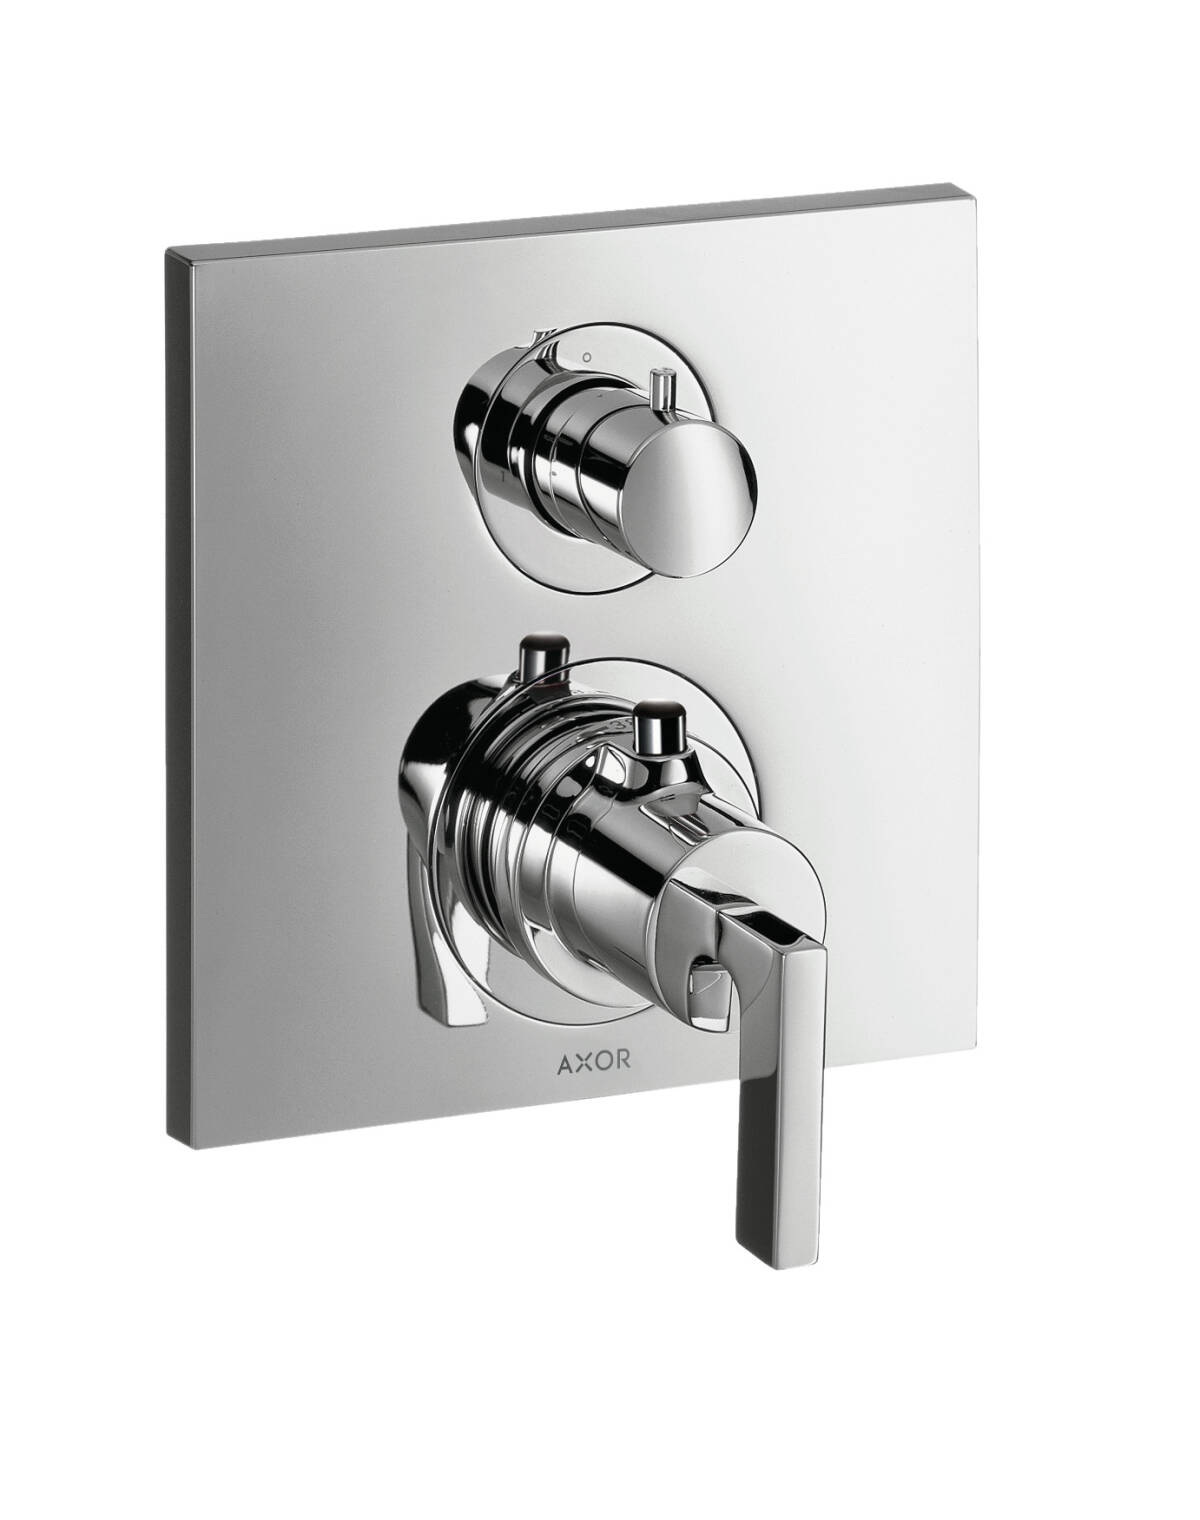 Thermostat for concealed installation with shut-off/ diverter valve and lever handle, Chrome, 39720000